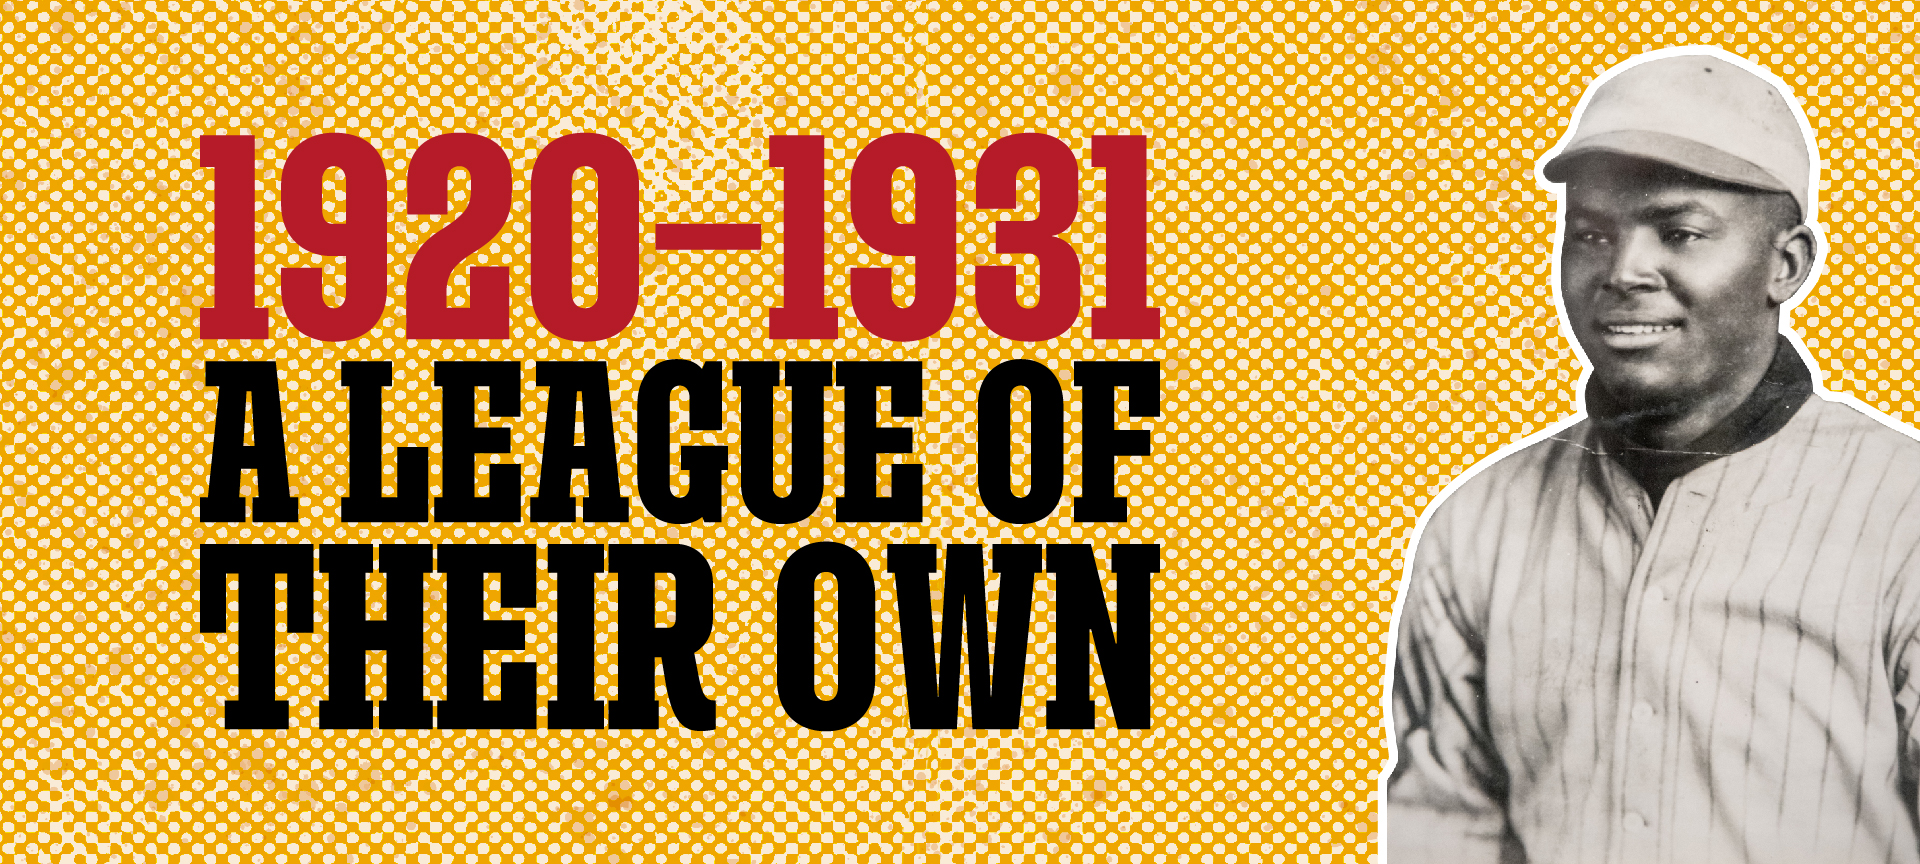 1920-1931: A League of Their Own